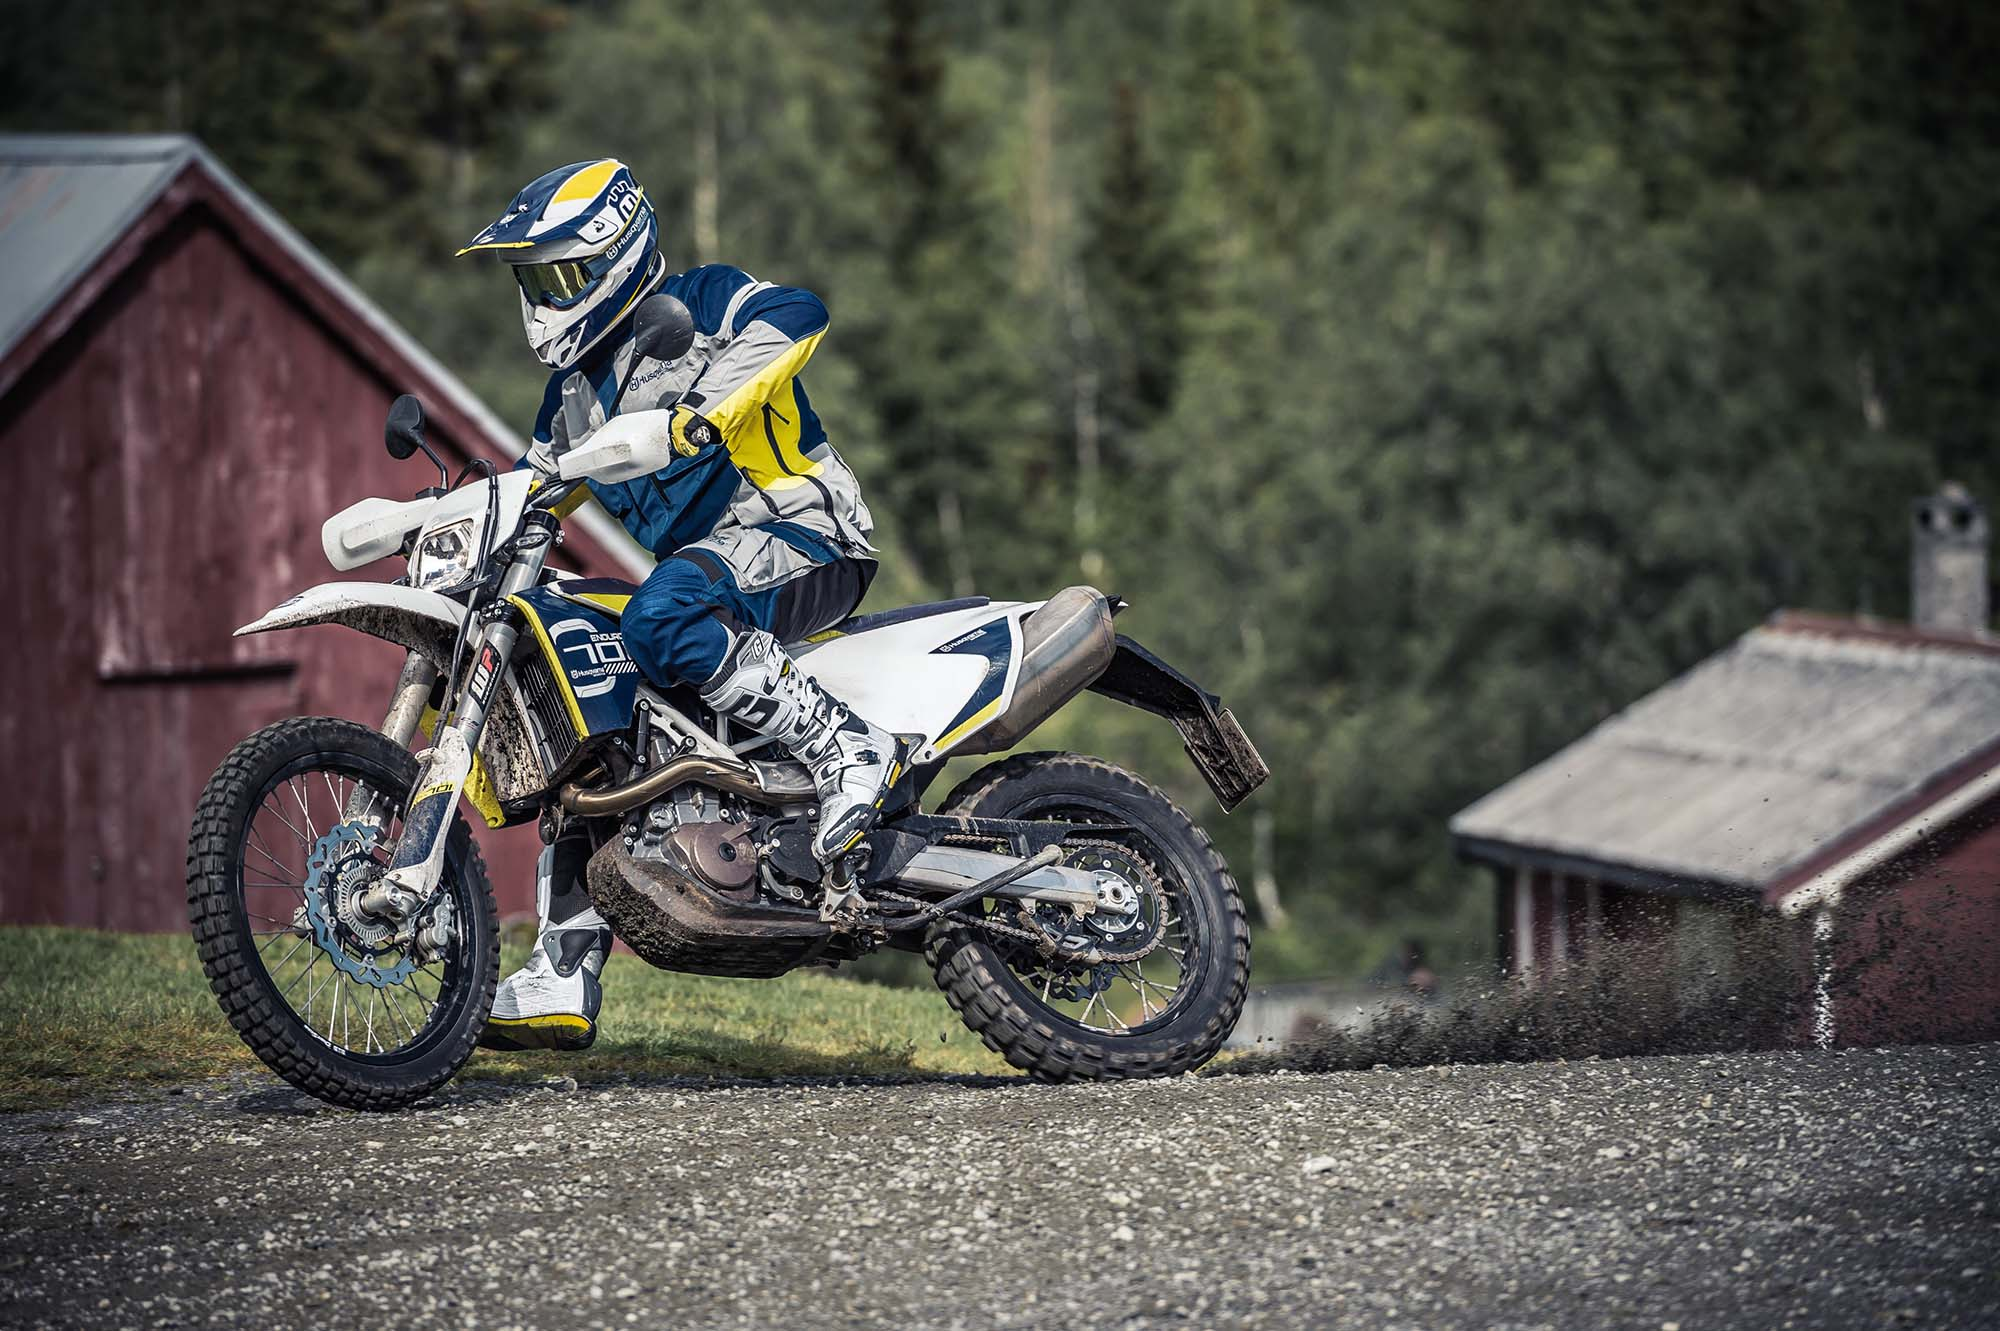 Finally, Here is the Husqvarna 701 Enduro